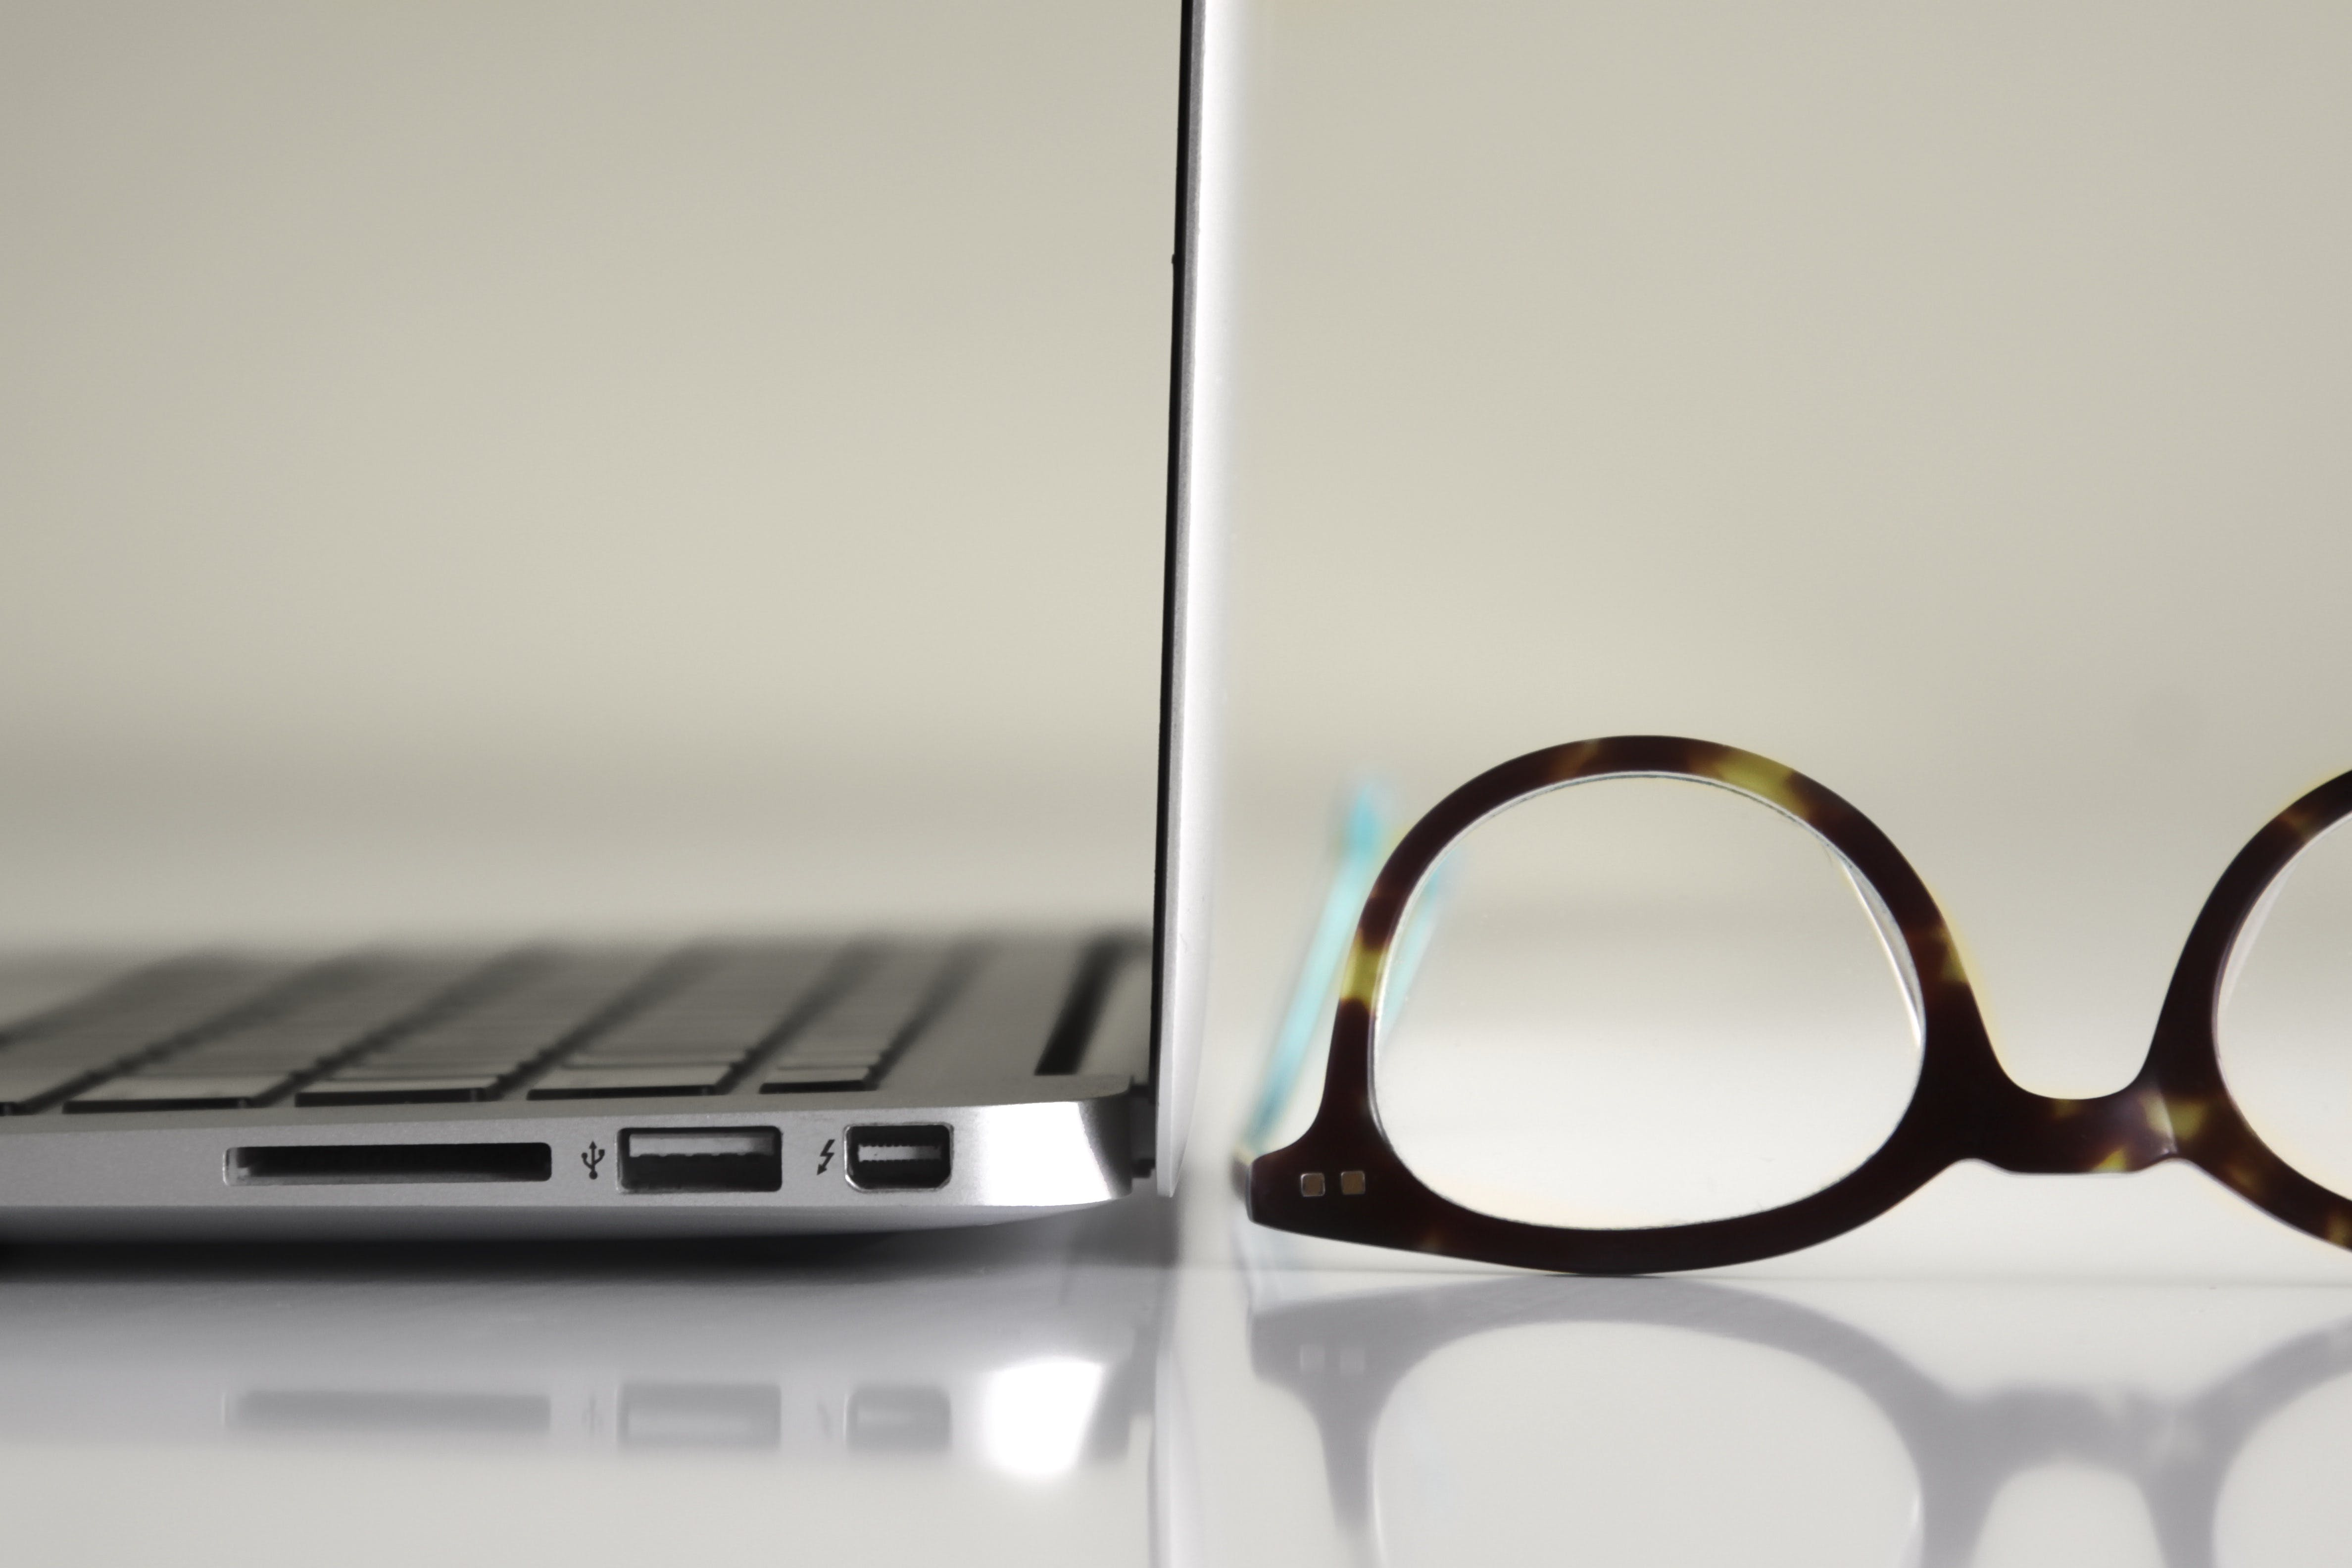 Black Framed Eyeglasses Beside Laptop Computer